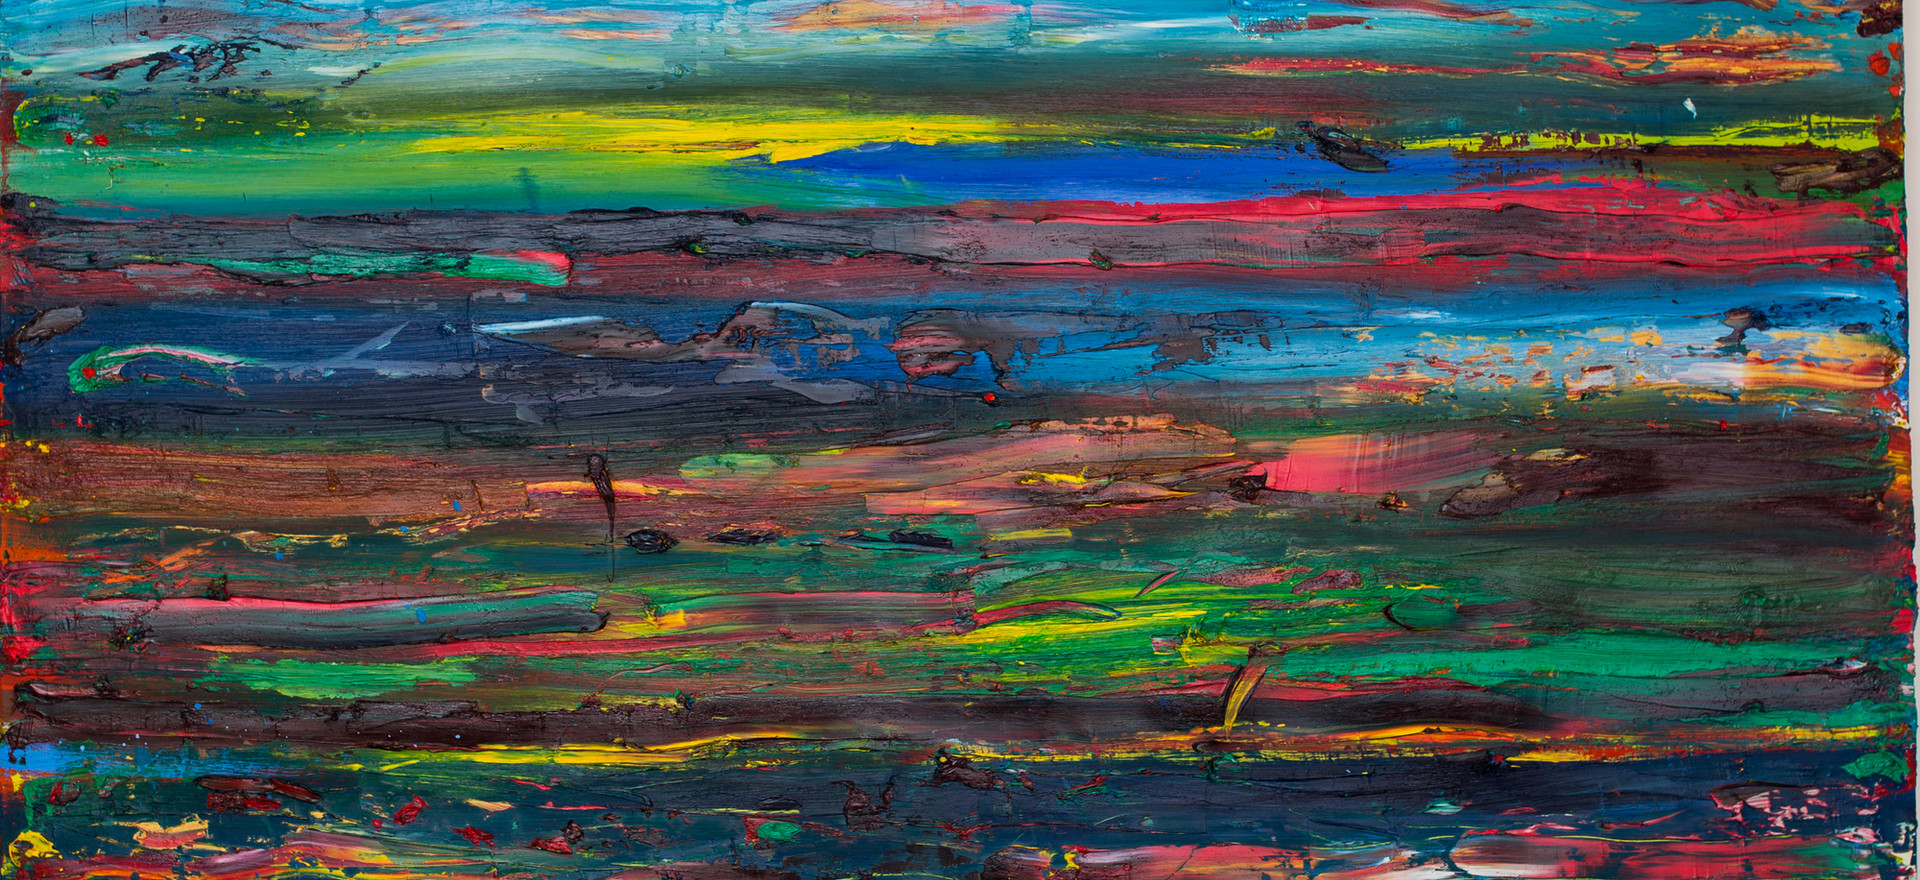 """Paysage"", 2014, oil on canvas, 160 x 150 cm."